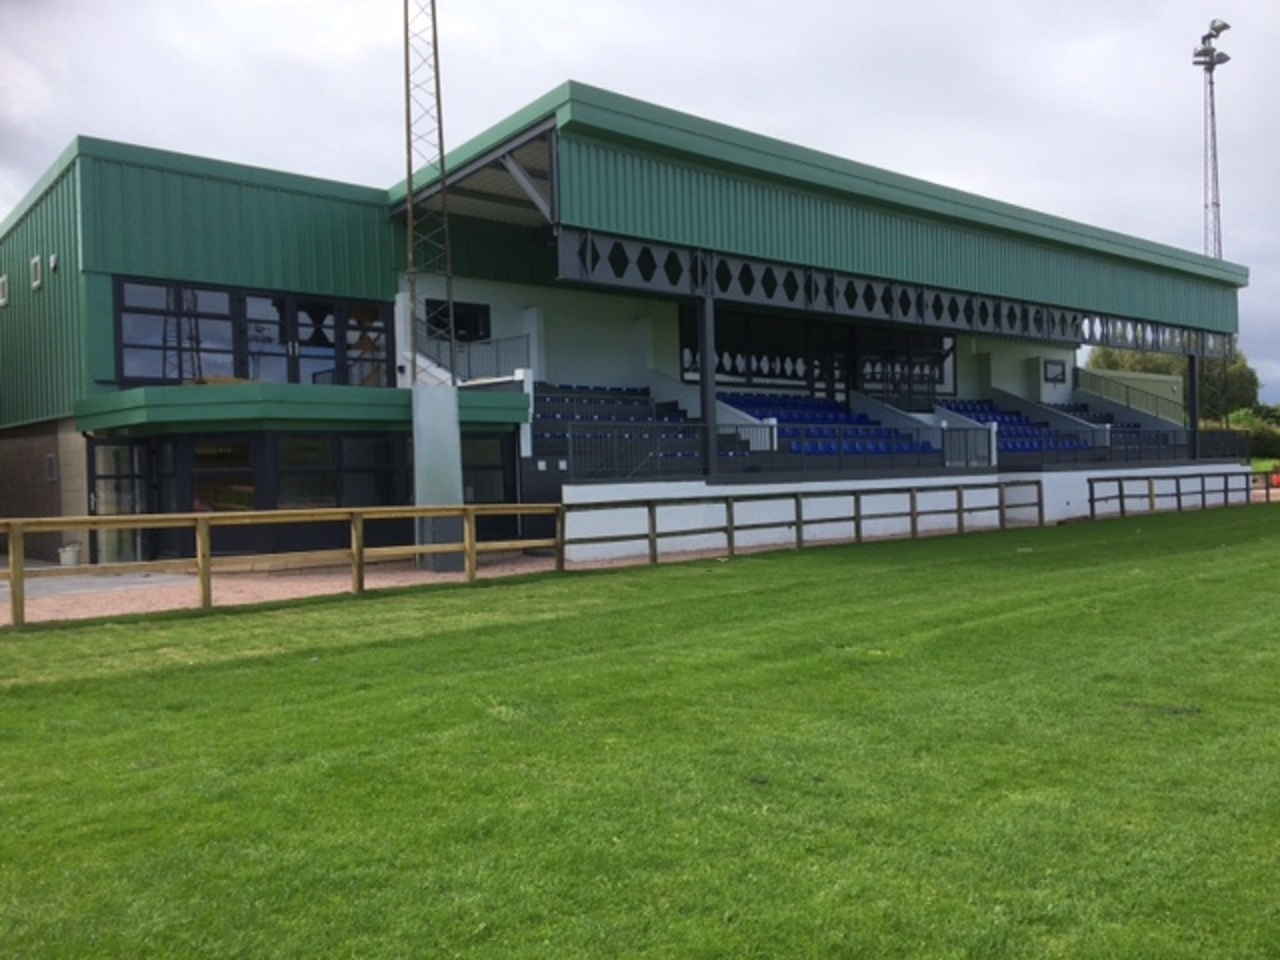 Howe of Fife Rugby Club's Duffus Park pavilion.